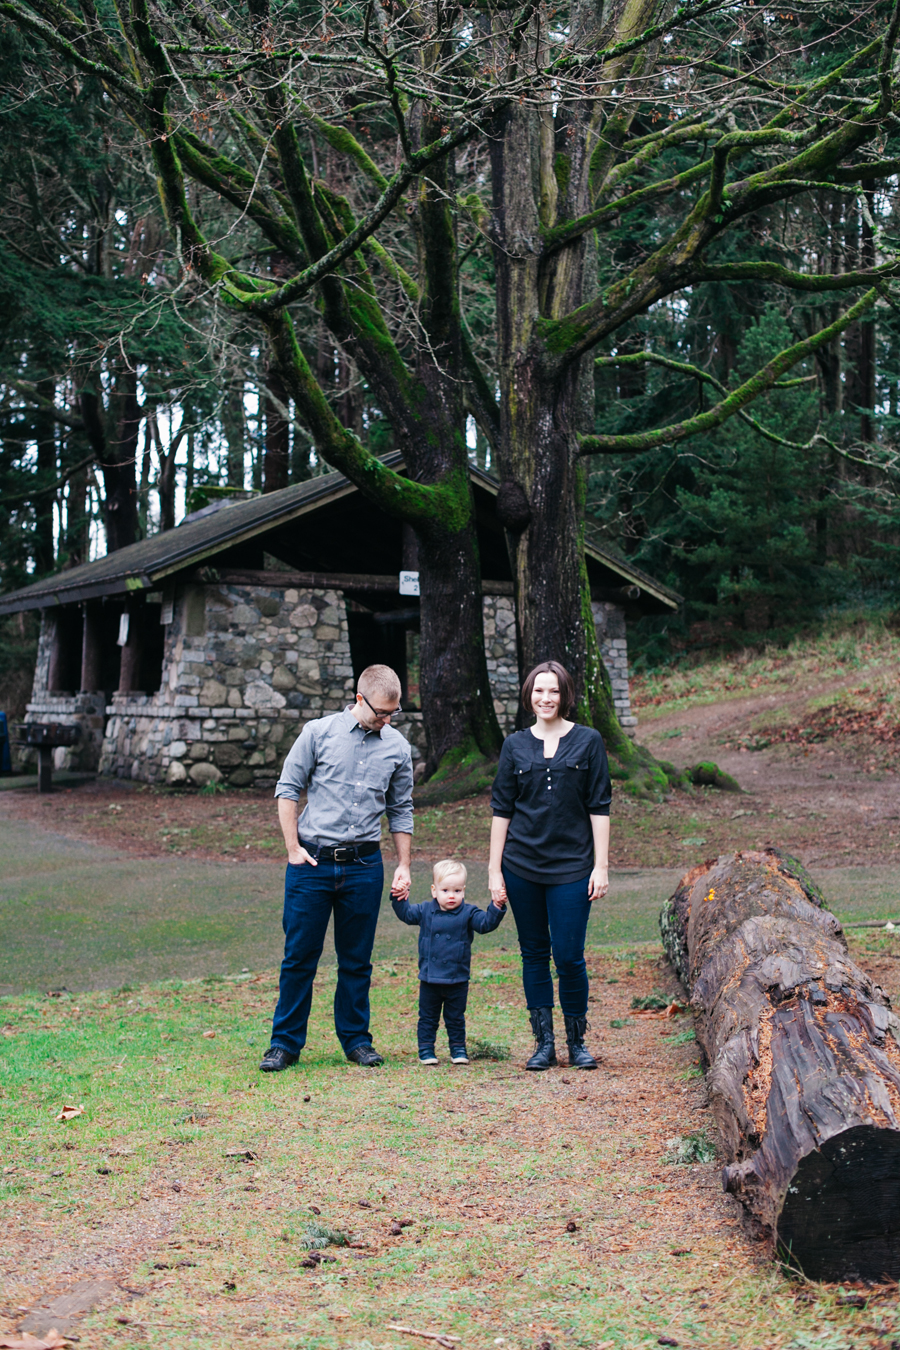 018-seattle-family-photographer-carkeek-park-katheryn-moran-photography.jpg